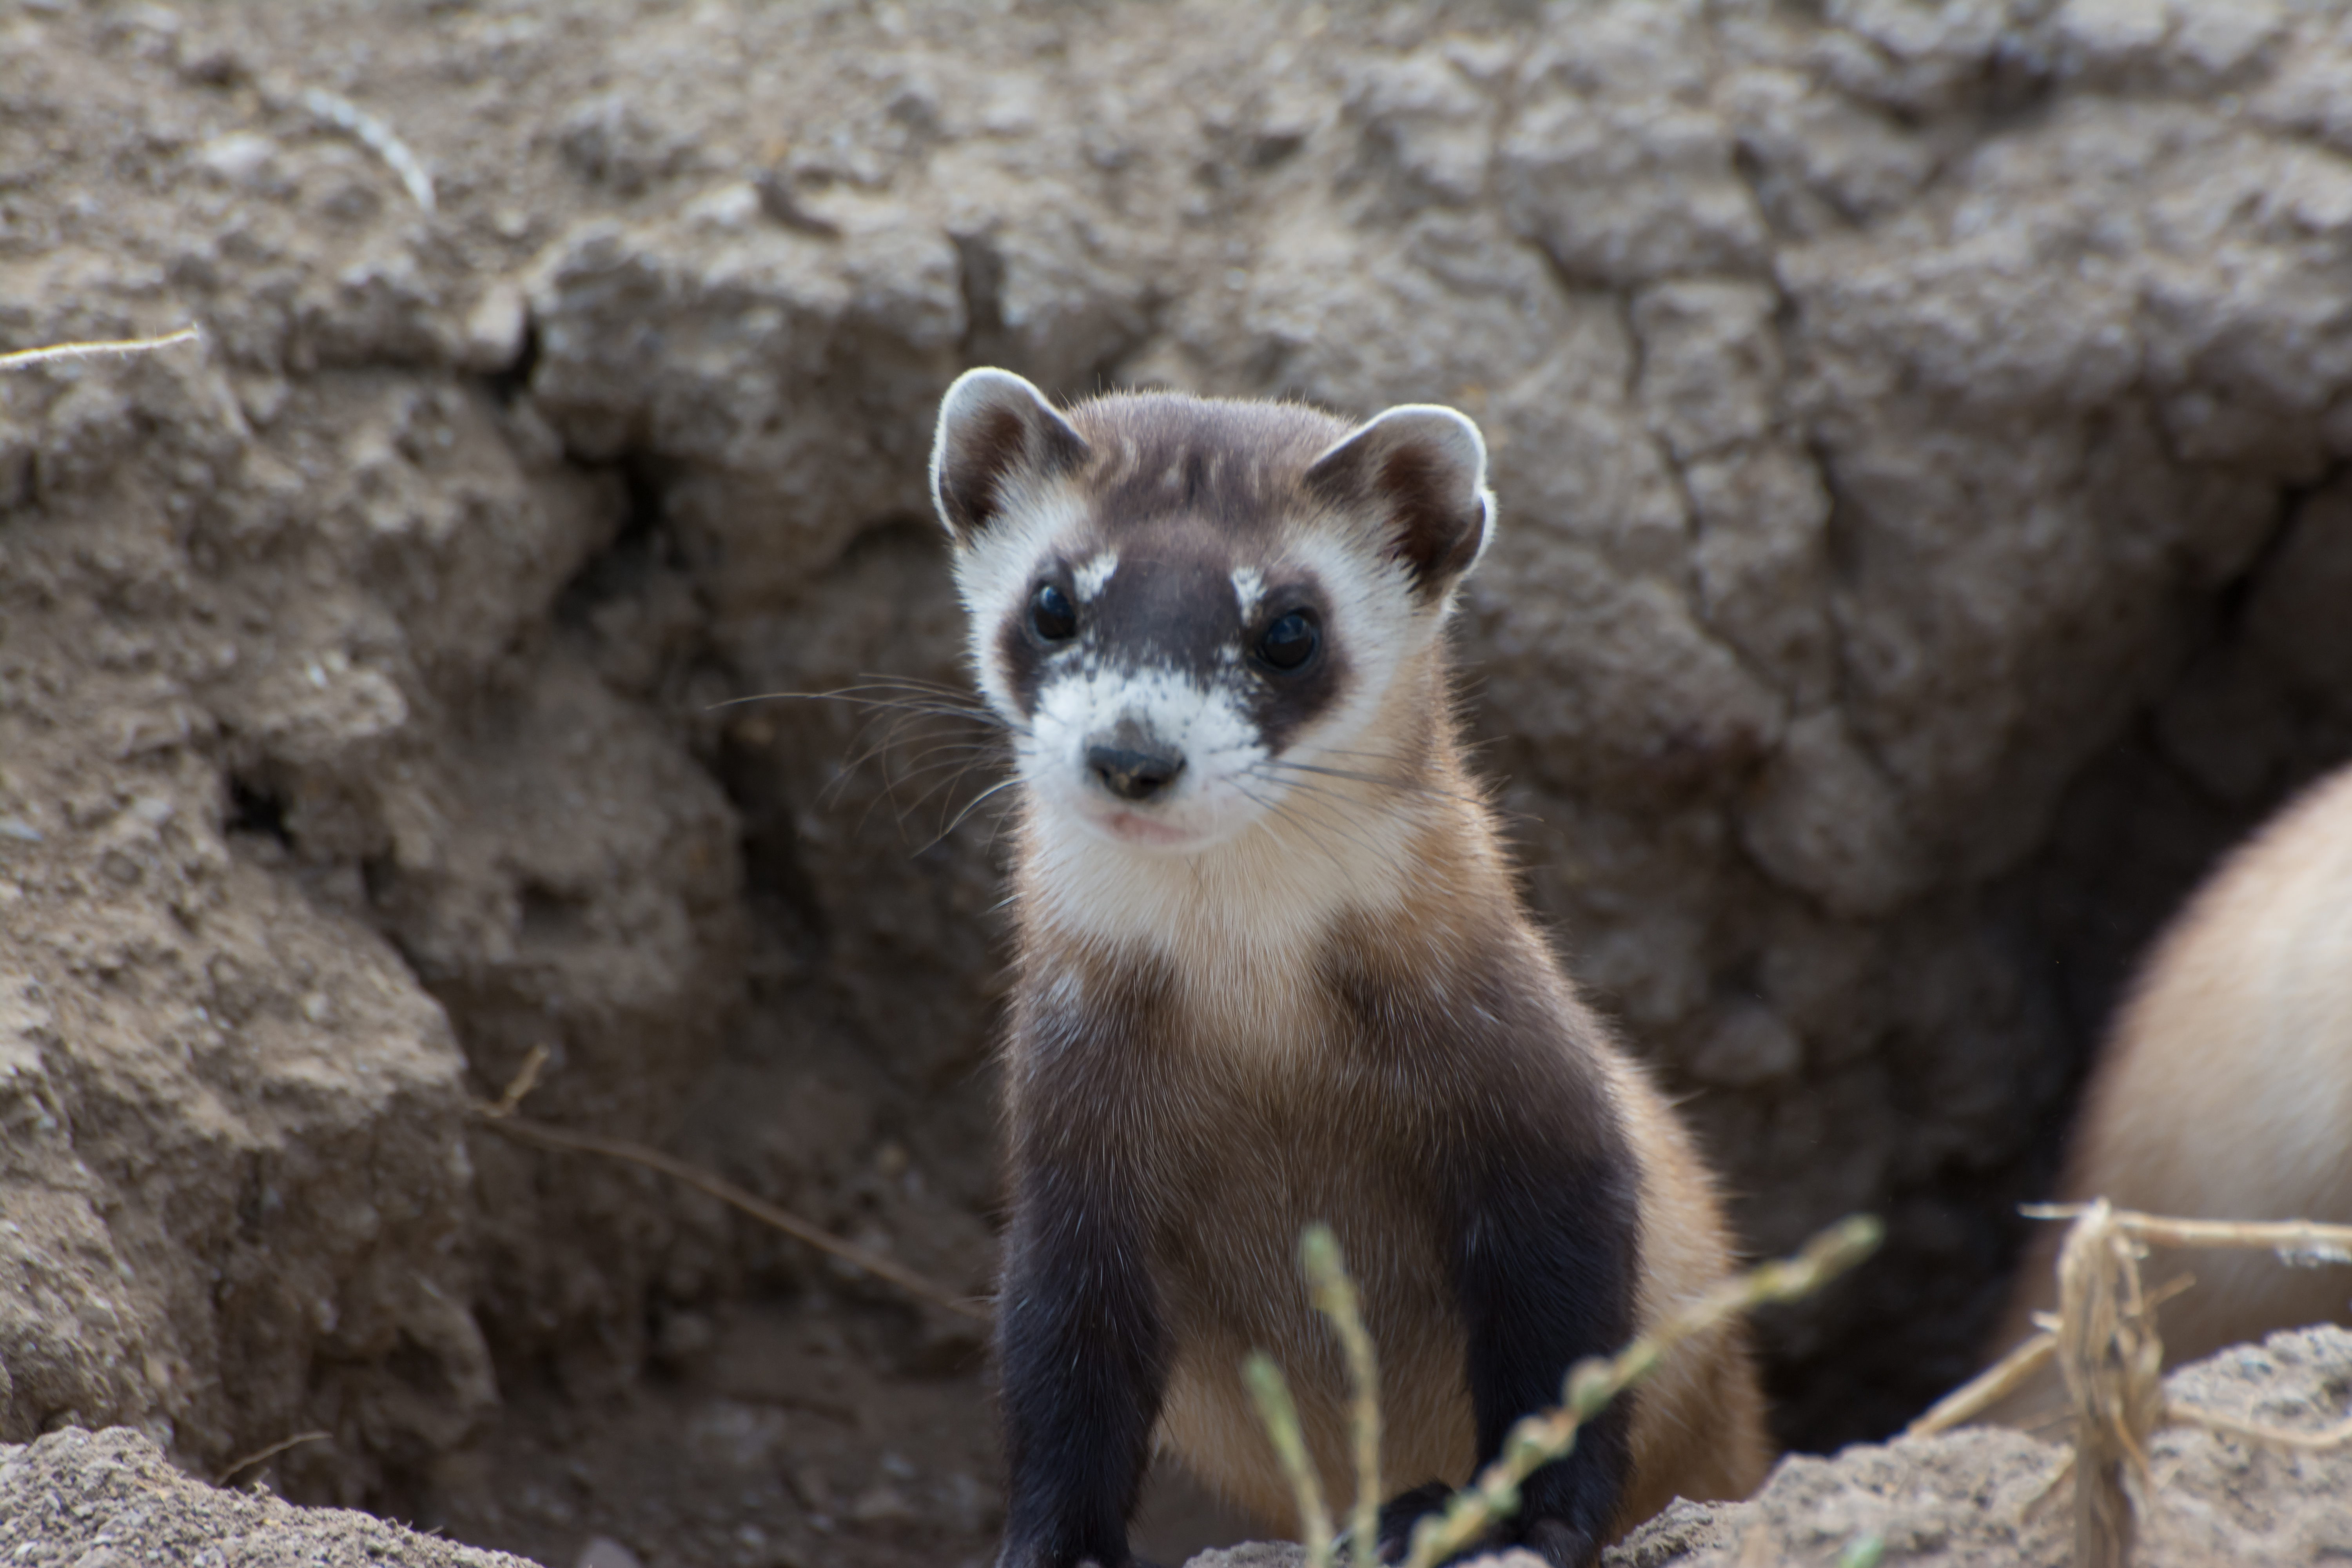 Black-footed ferret poking out of a hole